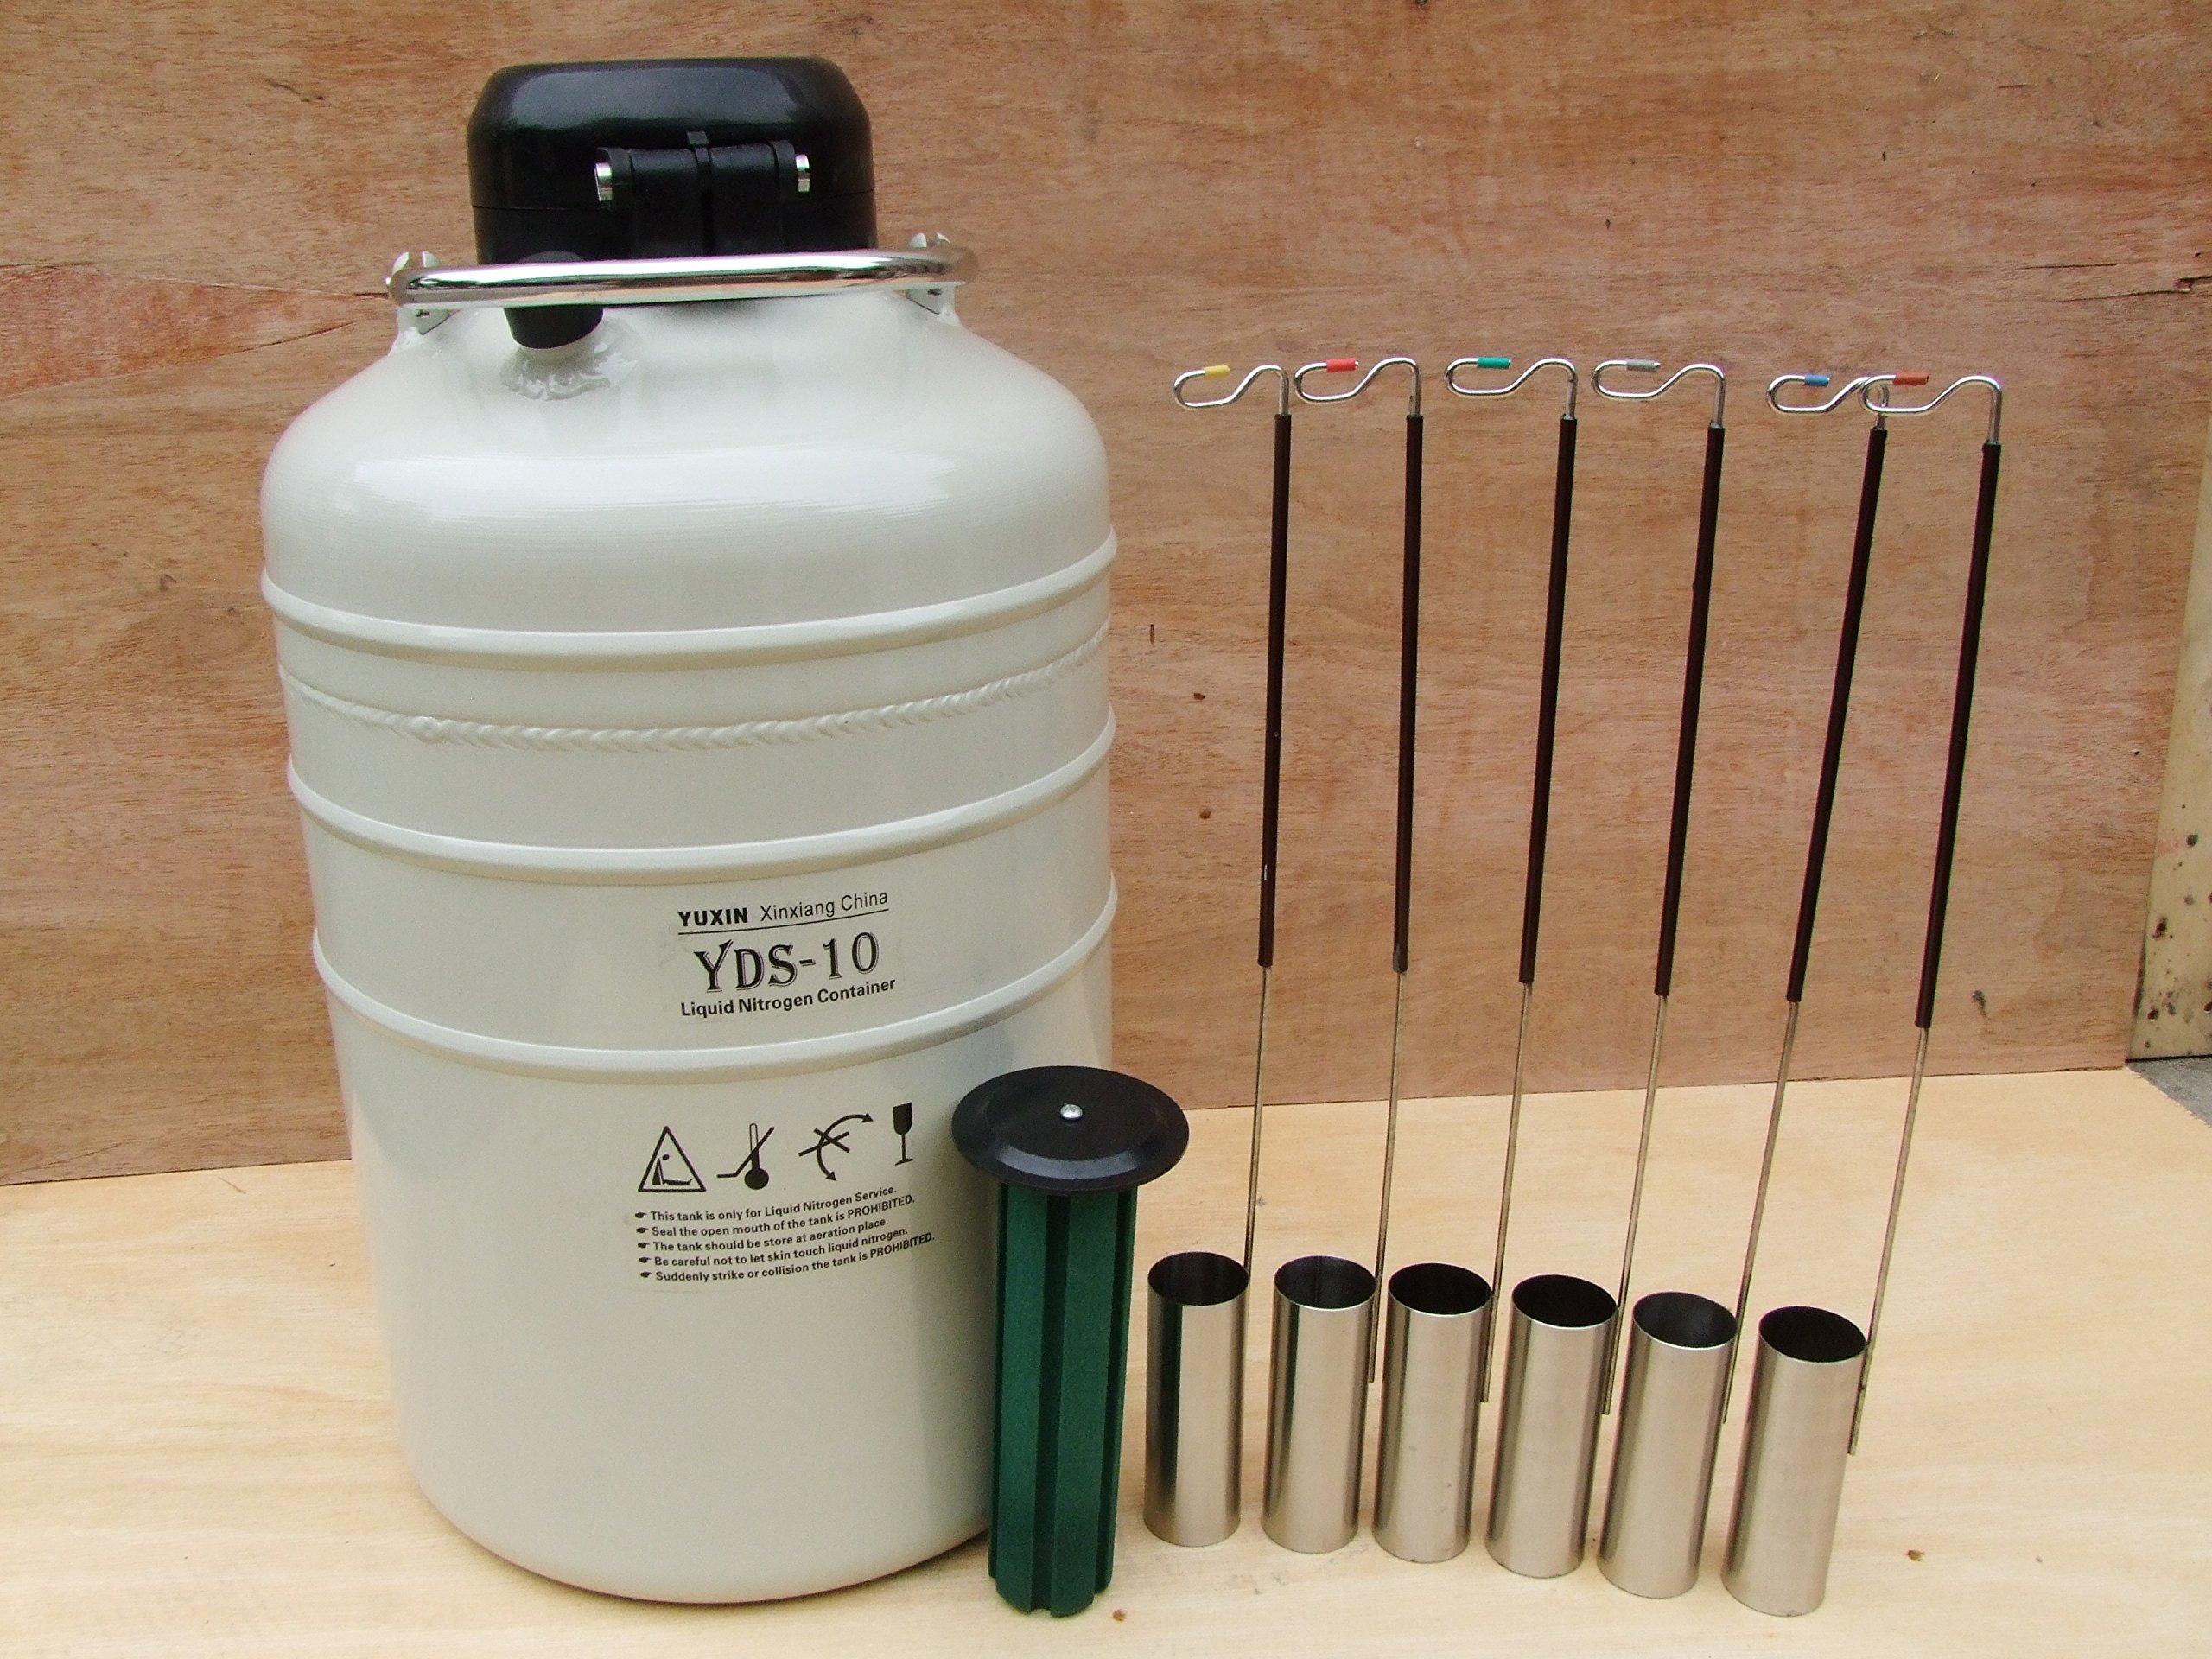 10 L Cryogenic Container Liquid Nitrogen Ln2 Tank with Straps and Carry Bag by HardwareFactoryStore.com (Image #1)